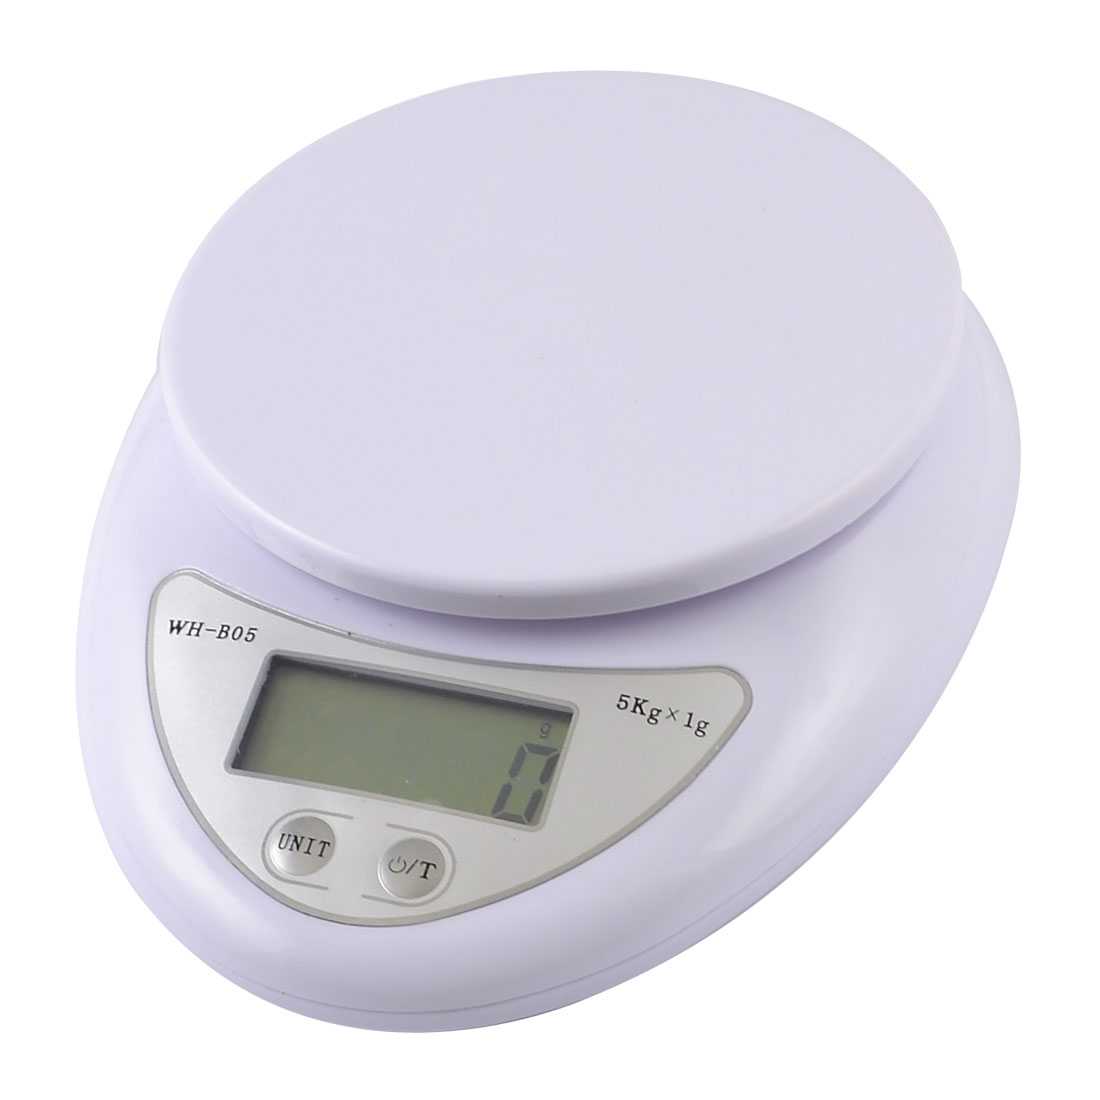 Kitchen 5Kg x 1g Battery Powered ON/OFF Weighing Digital Electronic Scale White